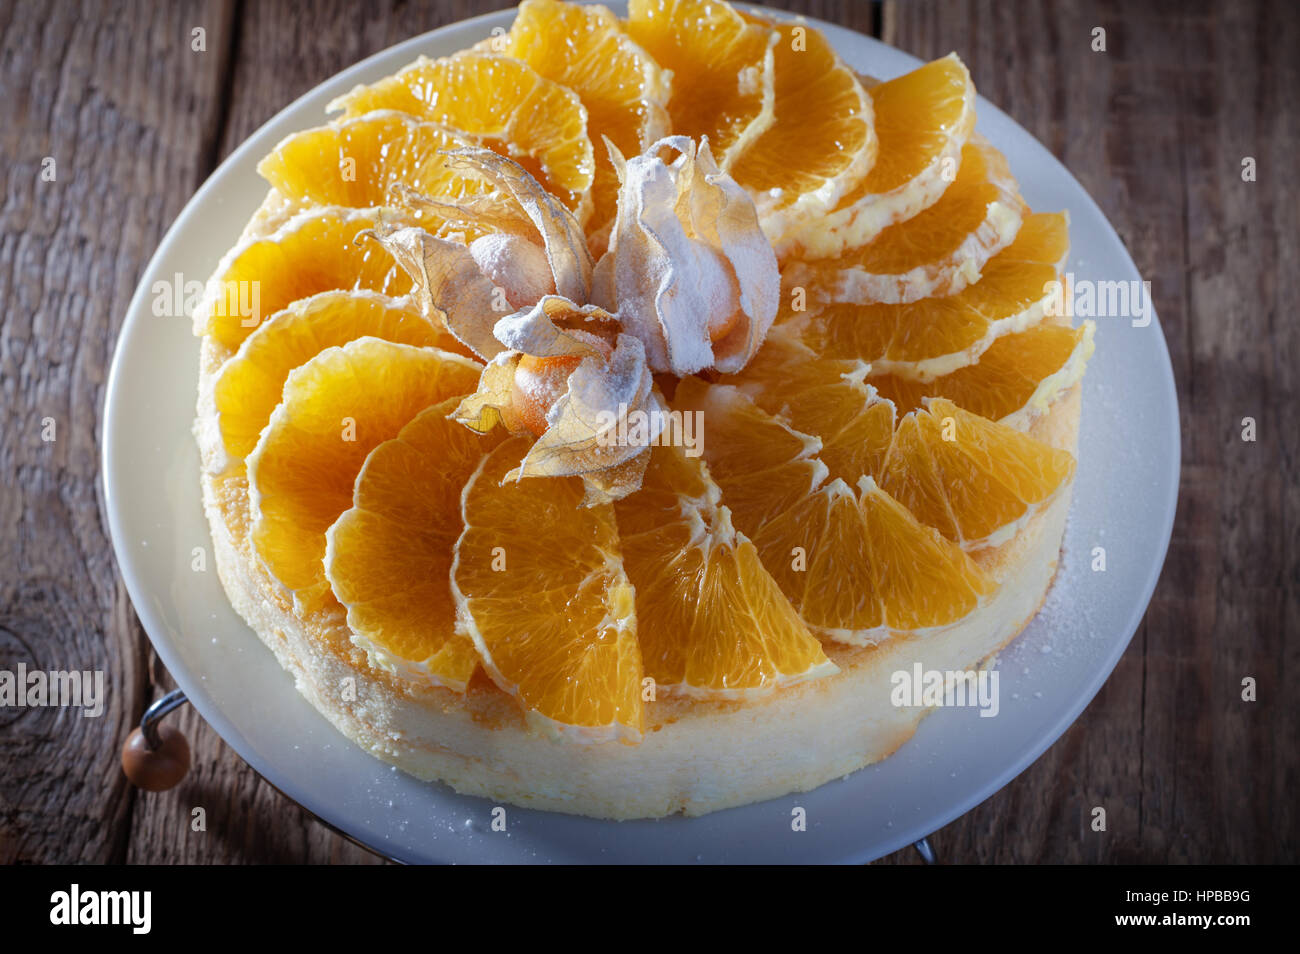 Cheesecake decorated with oranges and physalis on a table - Stock Image